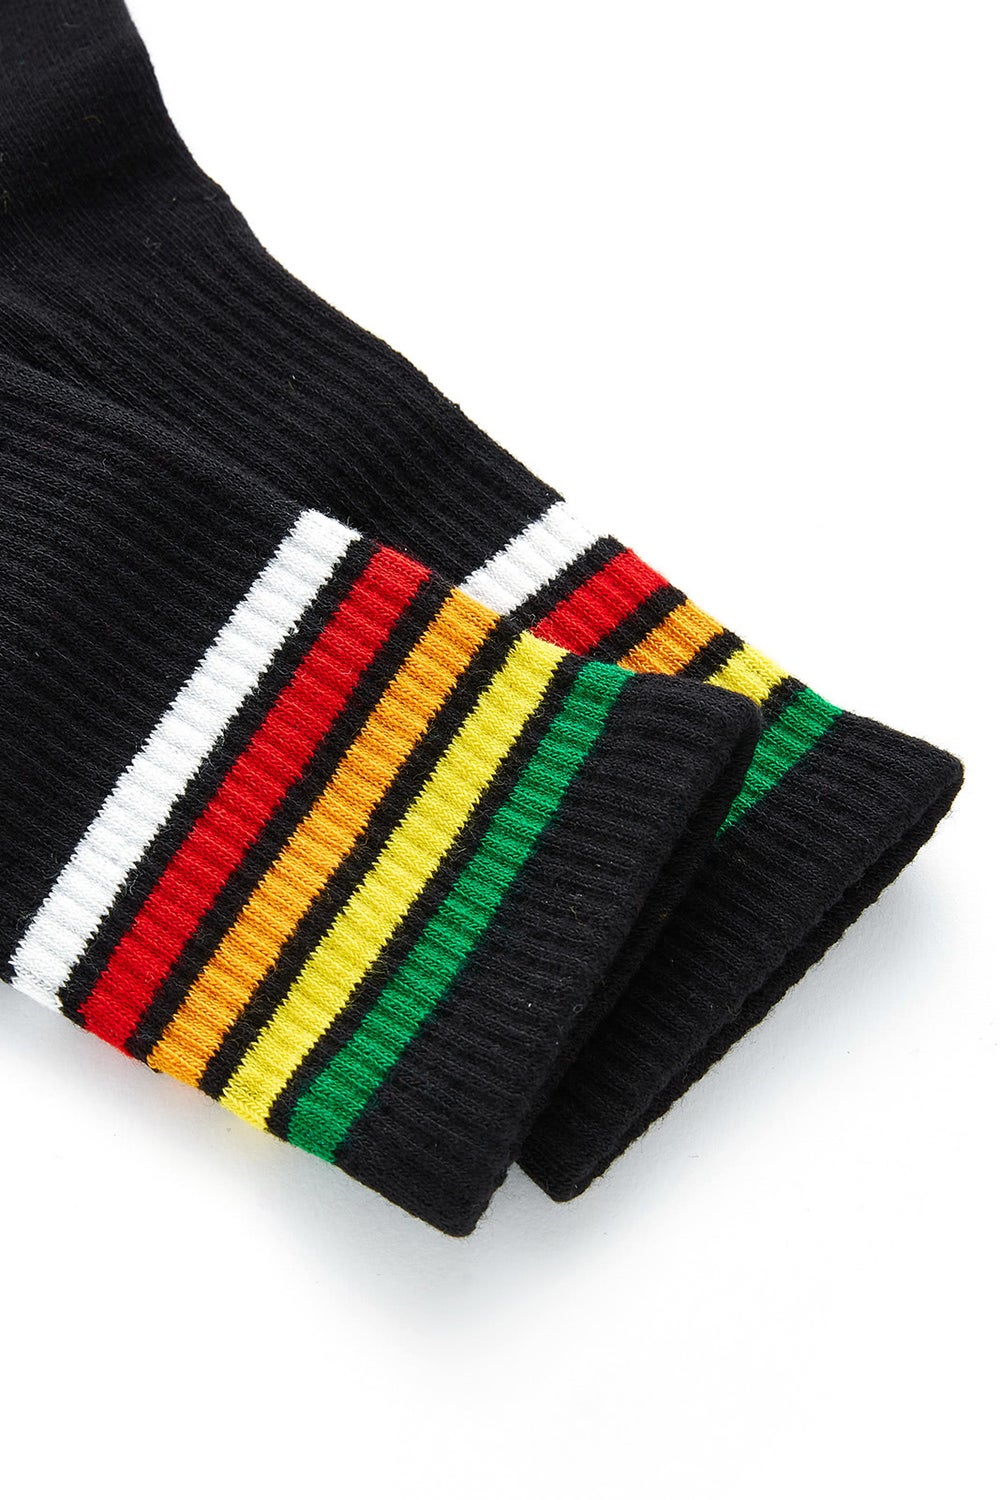 Image of DARK RAINBOW STRIPED SOCKS